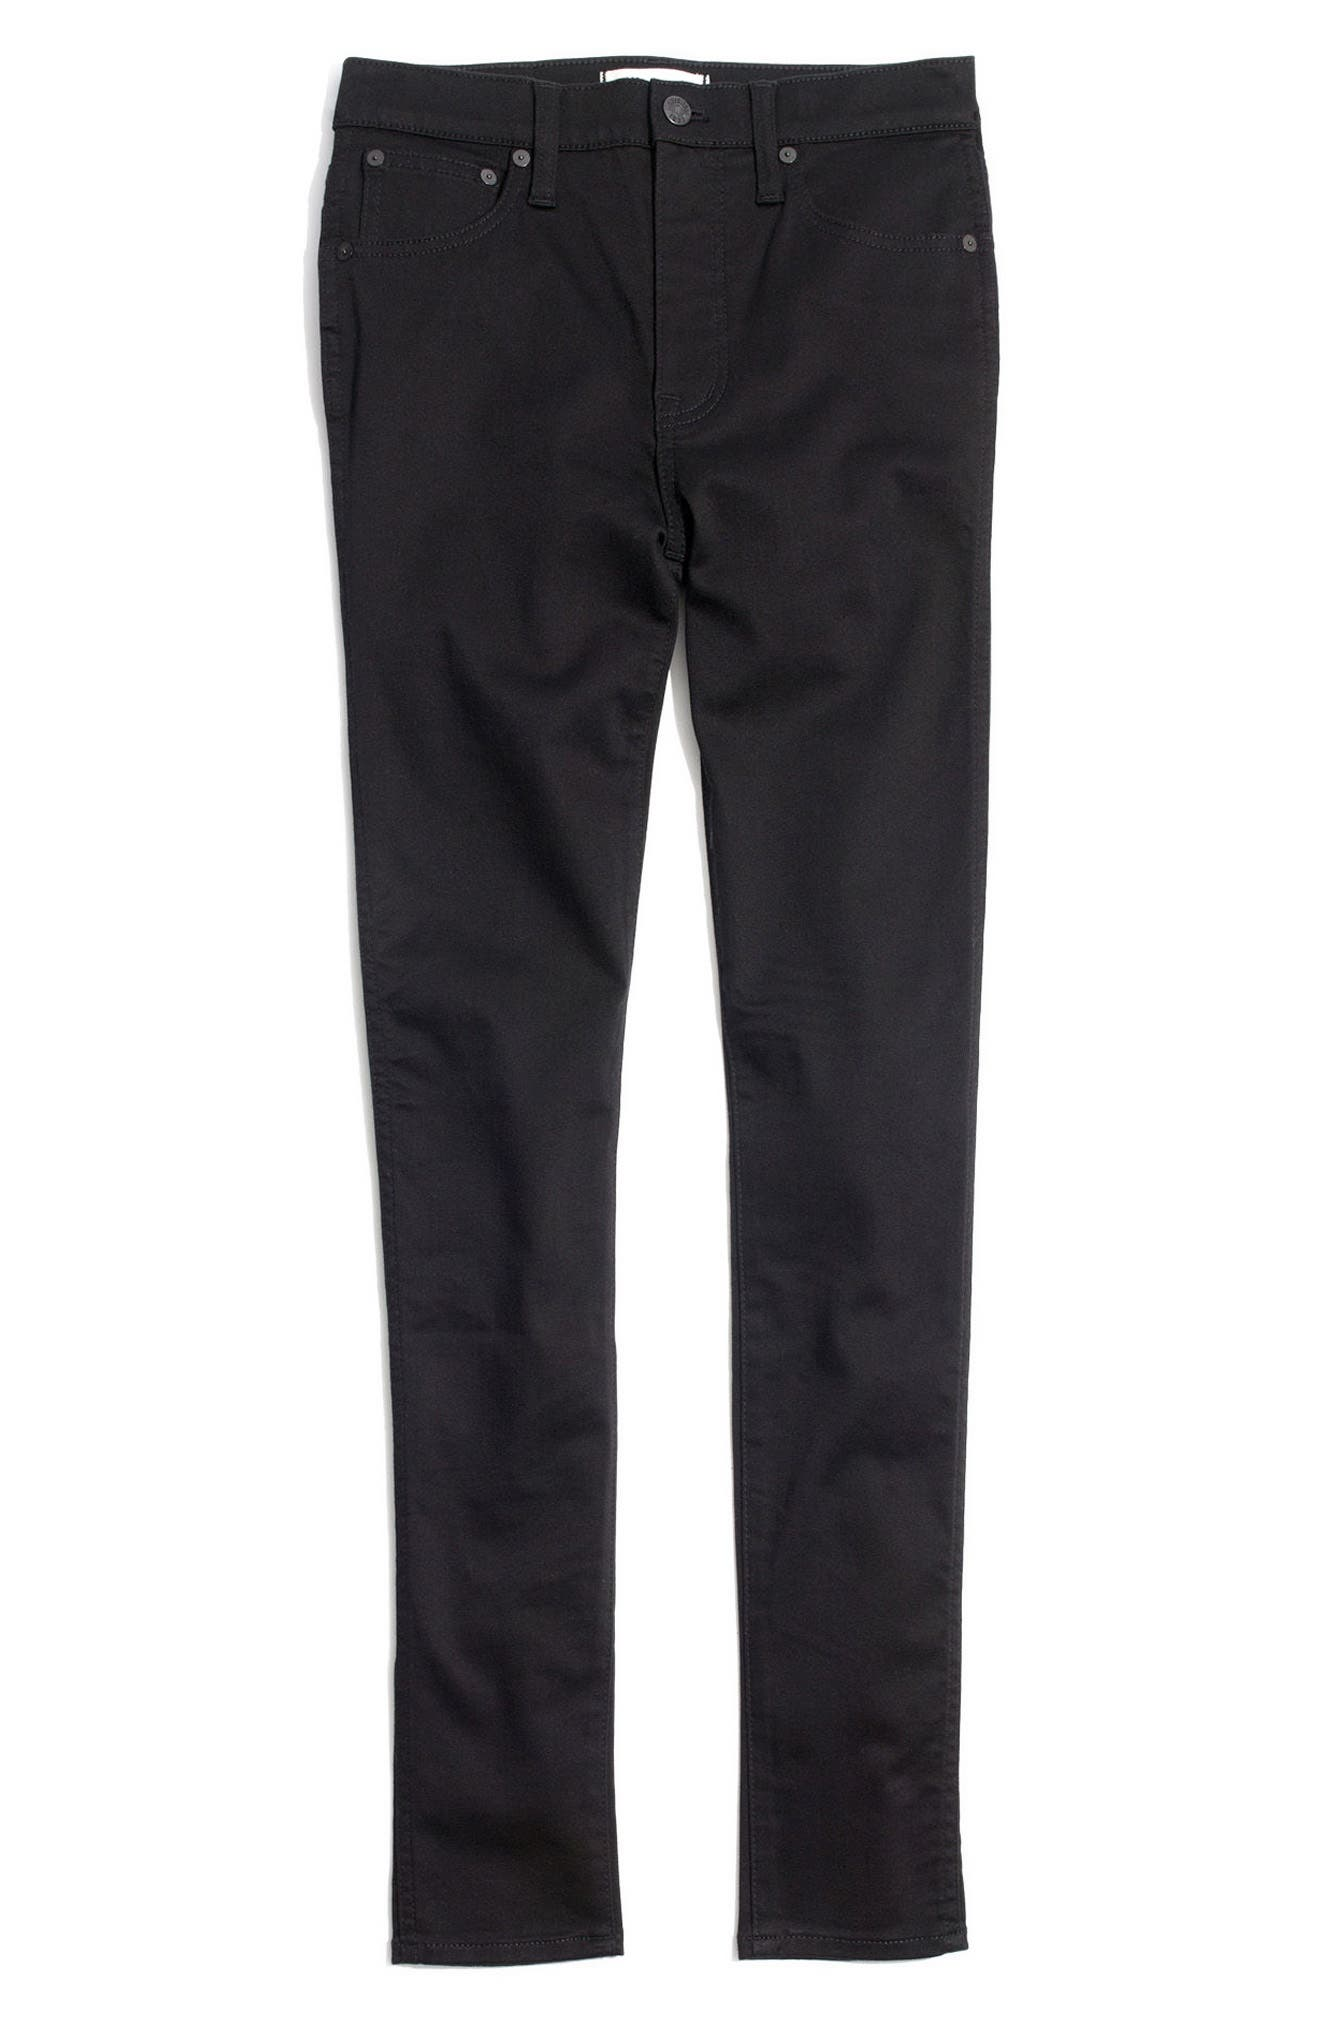 10-Inch High Waist Skinny Jeans,                             Alternate thumbnail 4, color,                             Carbondale